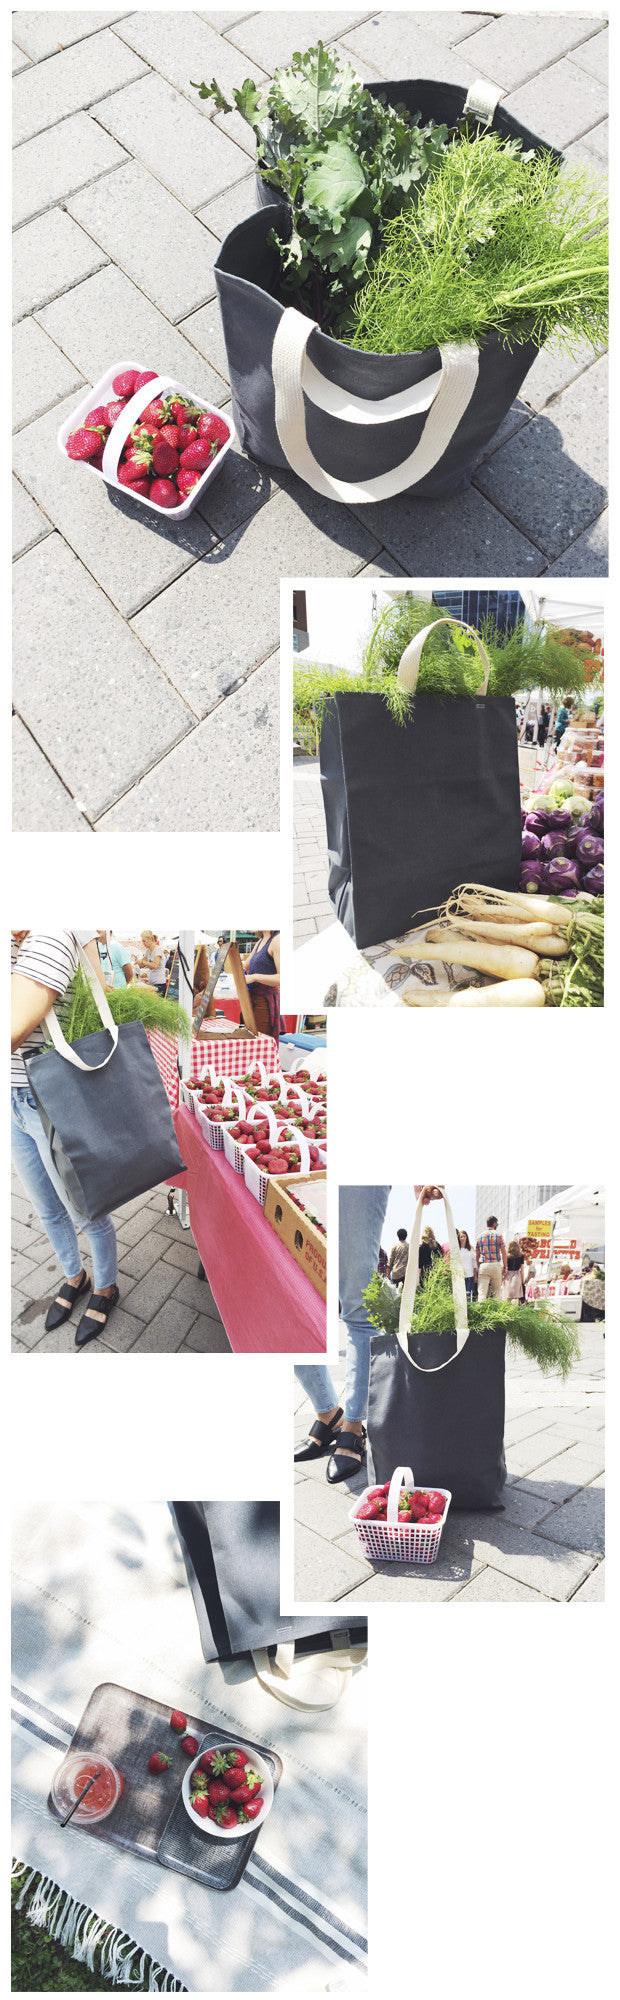 Waxed Canvas Tote Bags perfect for farmer's markets and everyday hauls